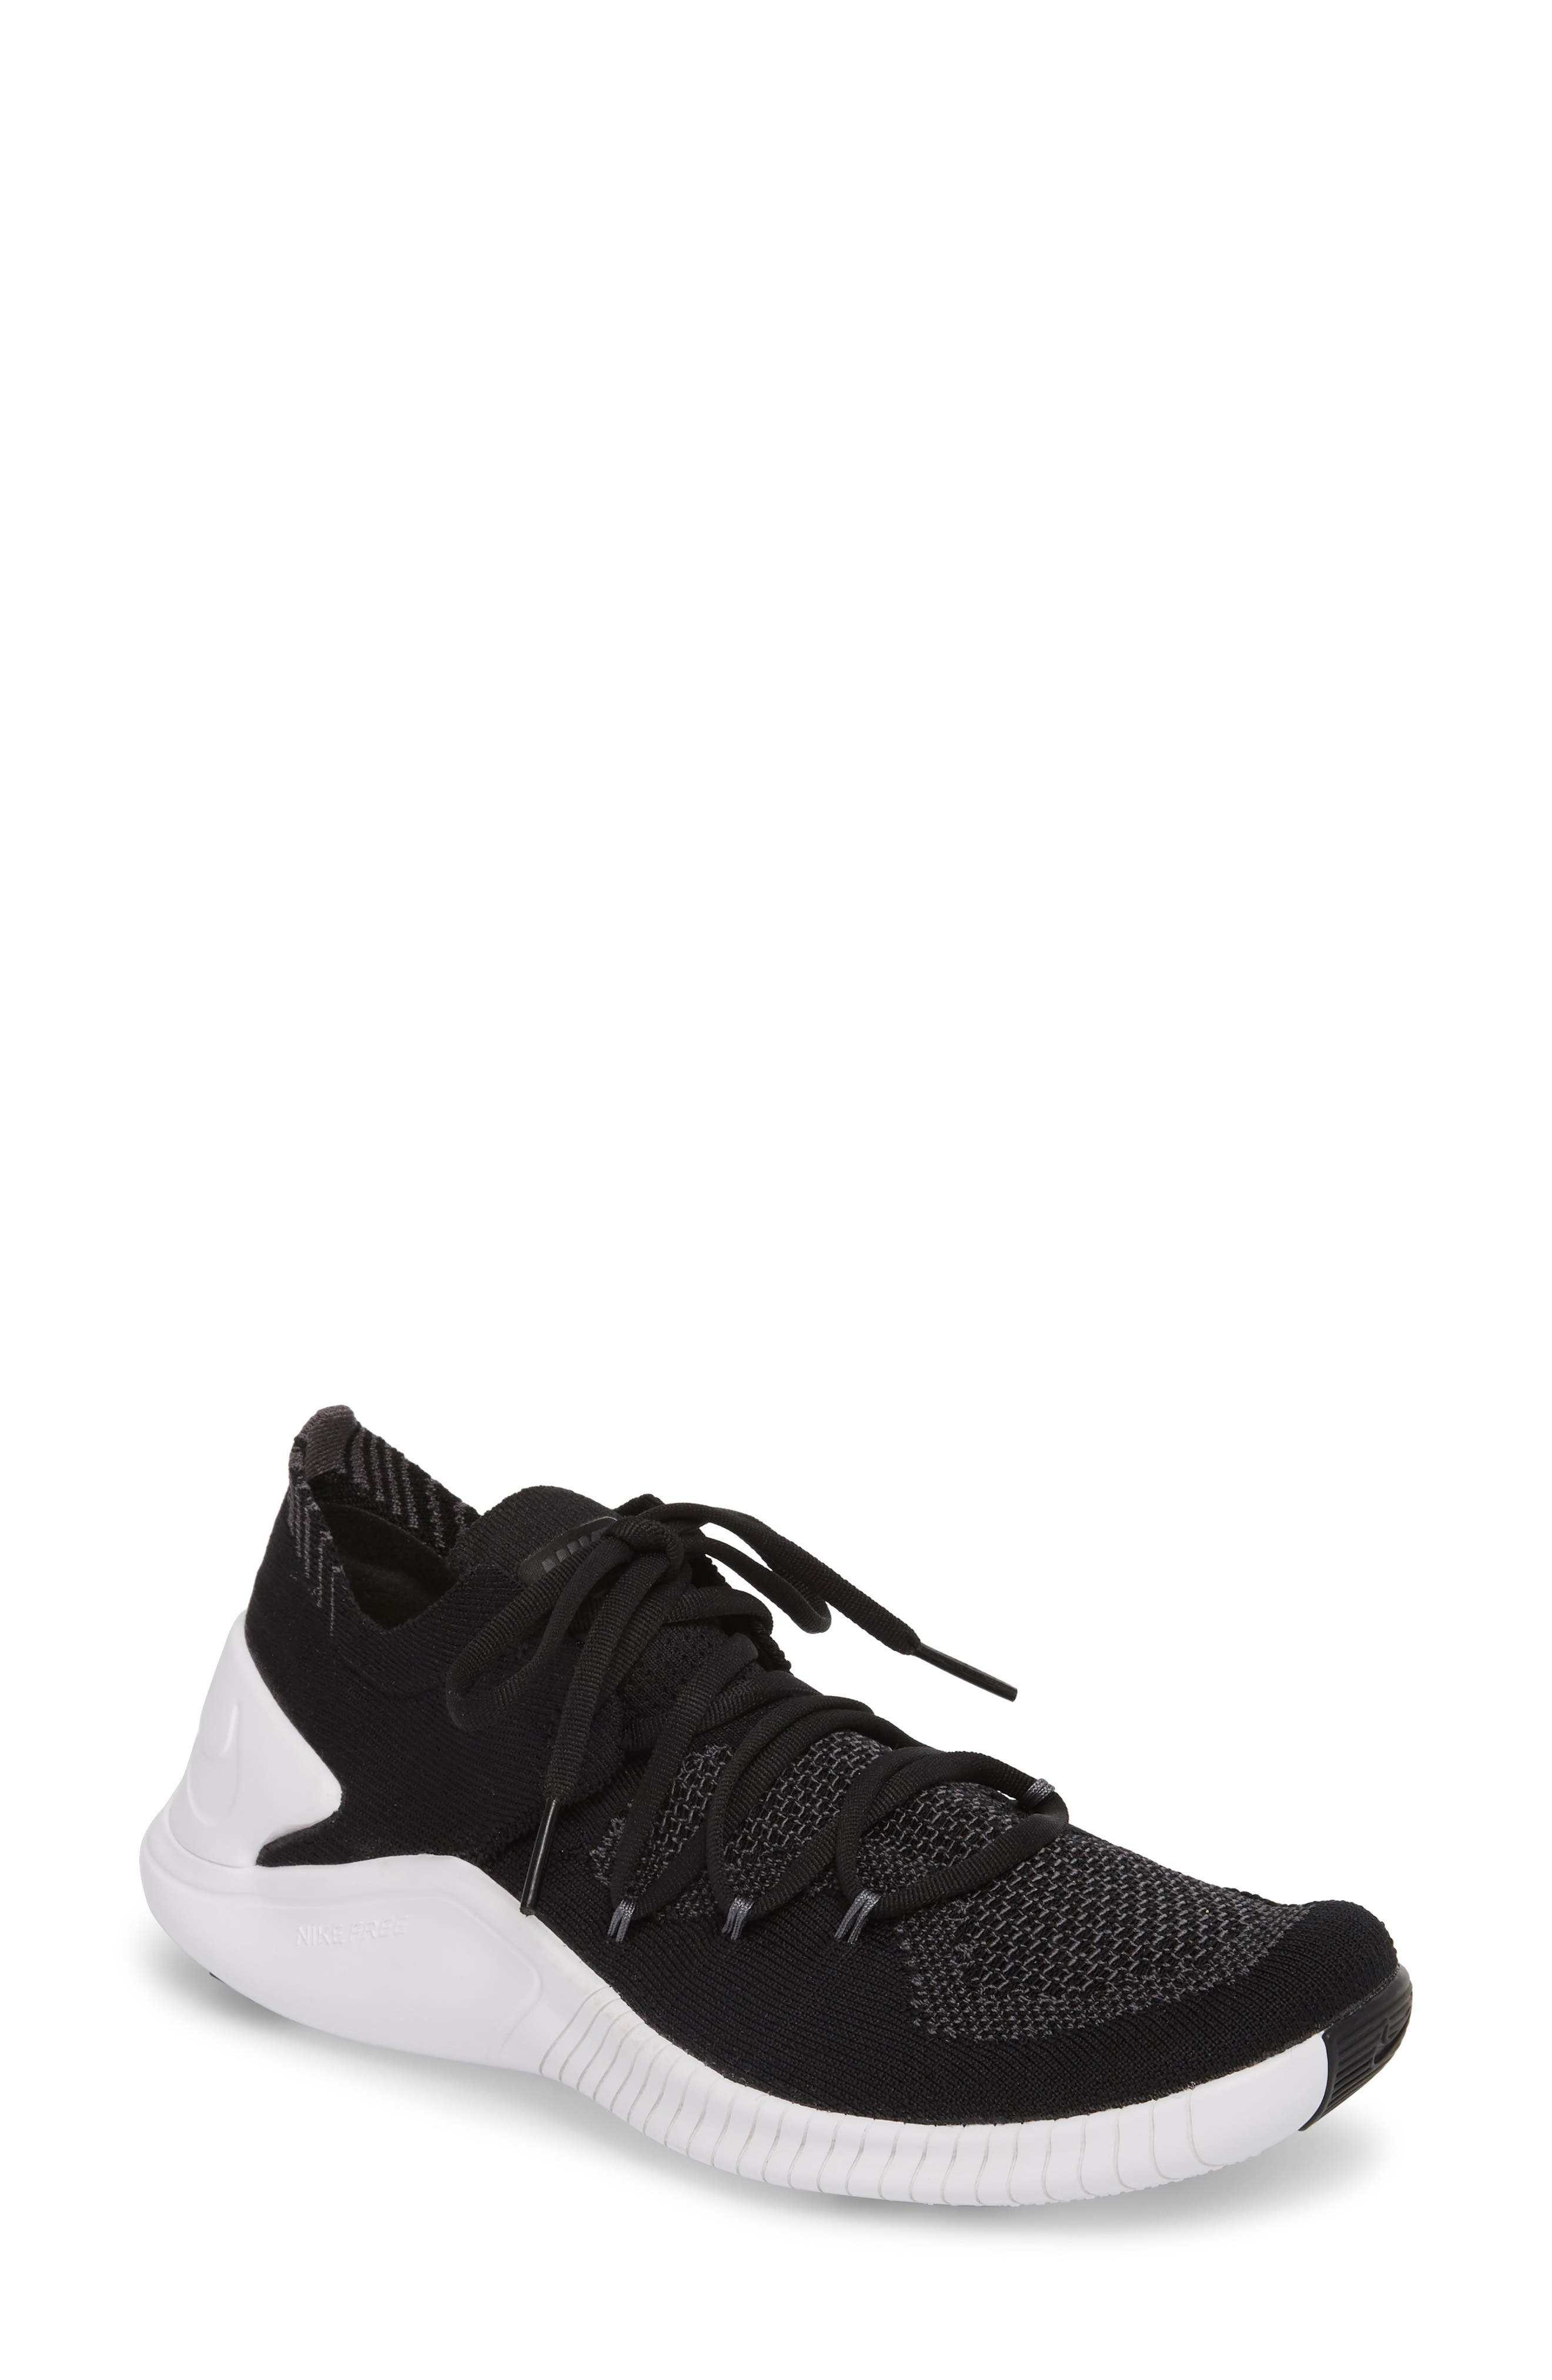 Free TR Flyknit 3 Training Shoe, Main, color, 001